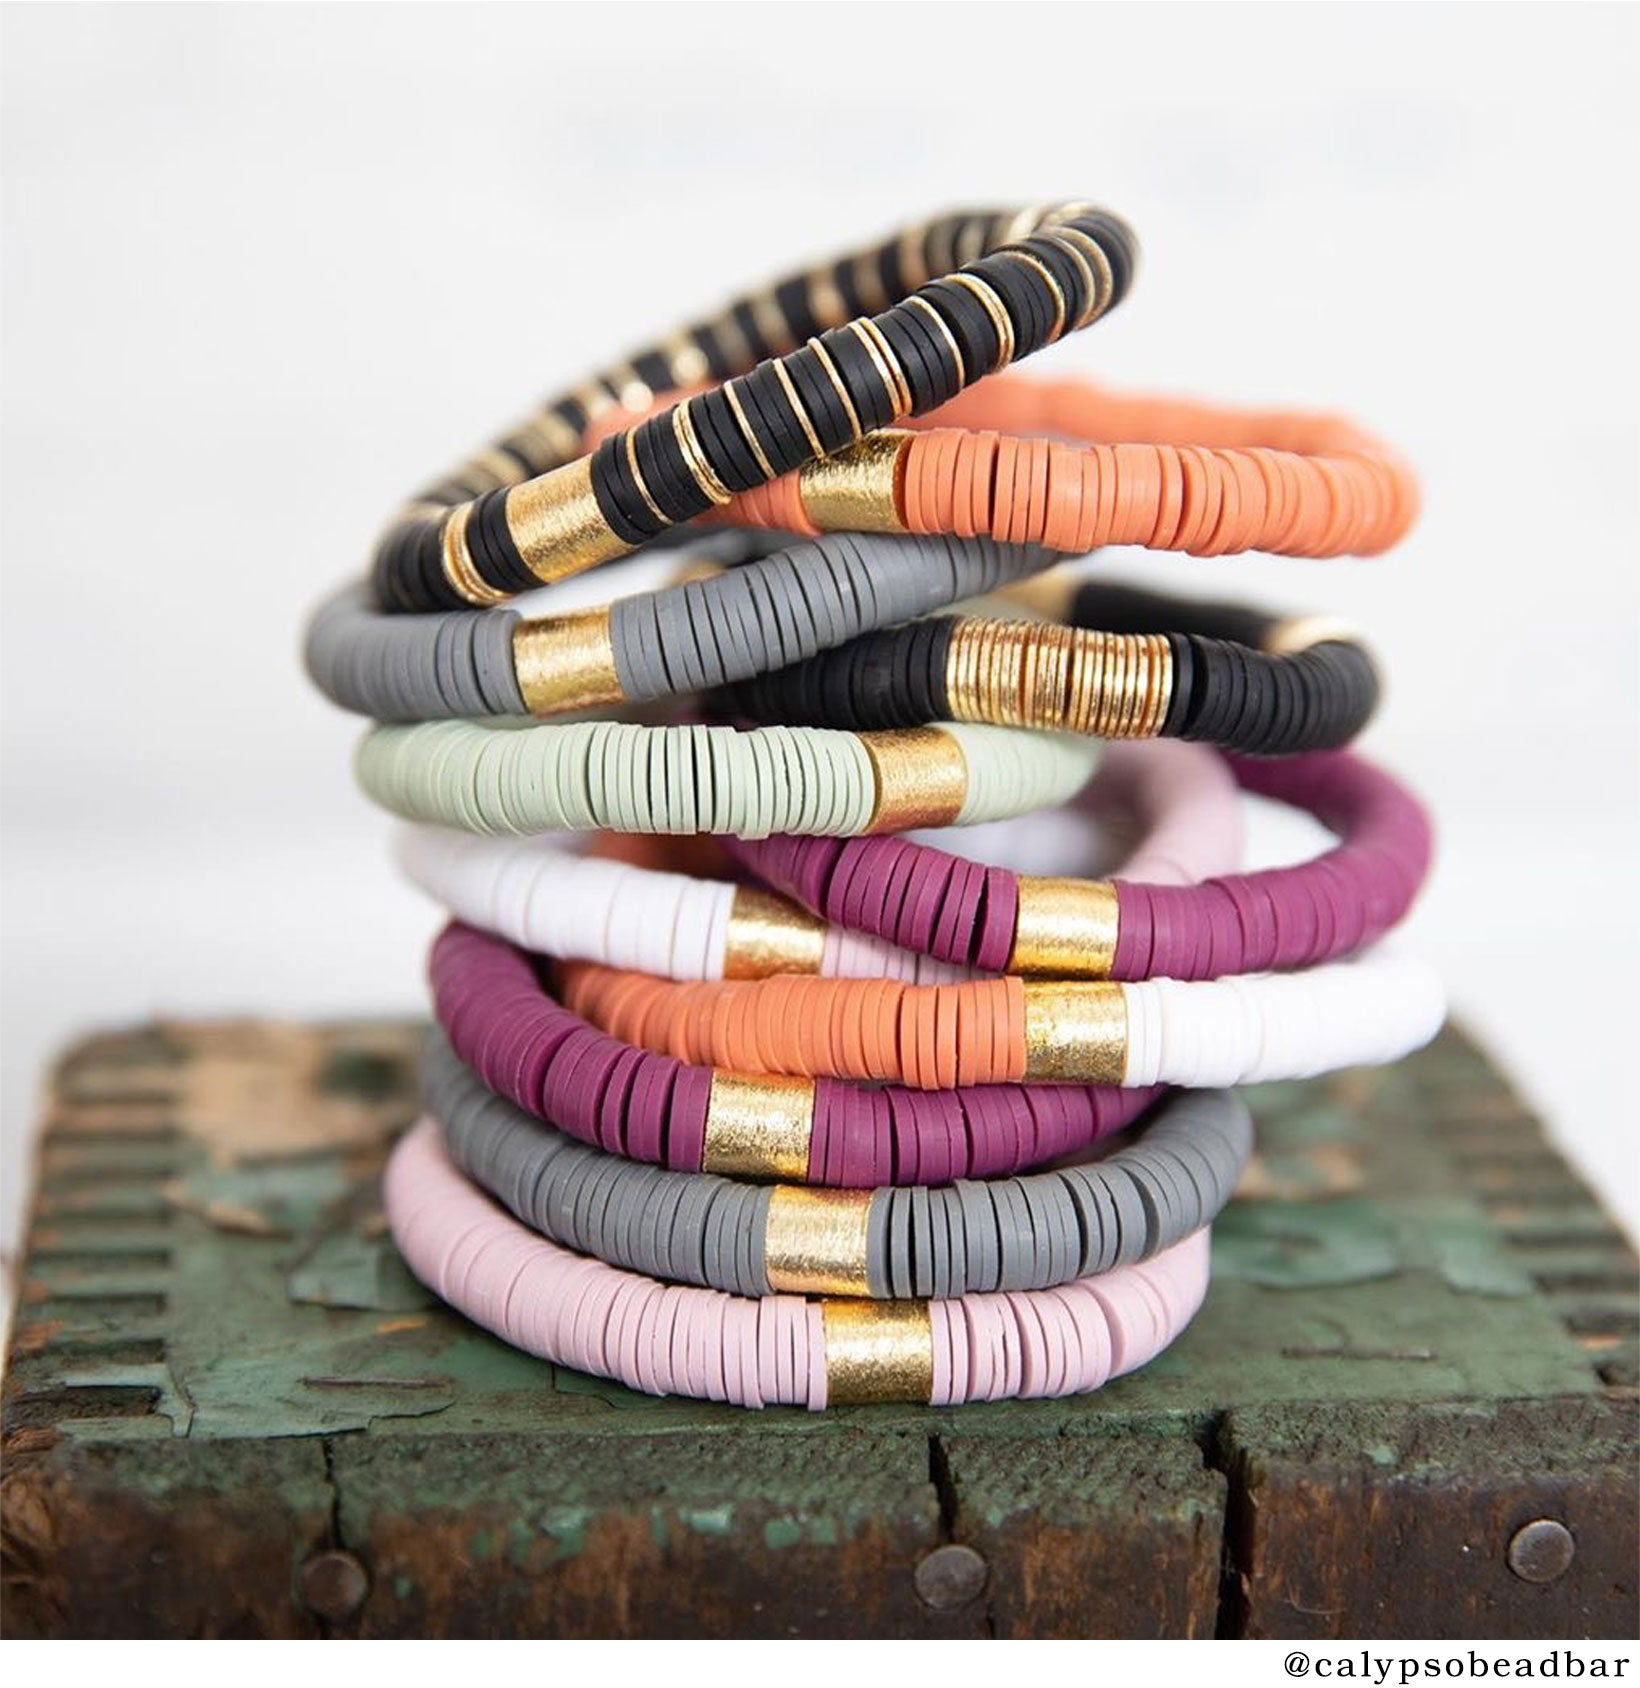 Calypso Bead Bar Stacked Bracelets